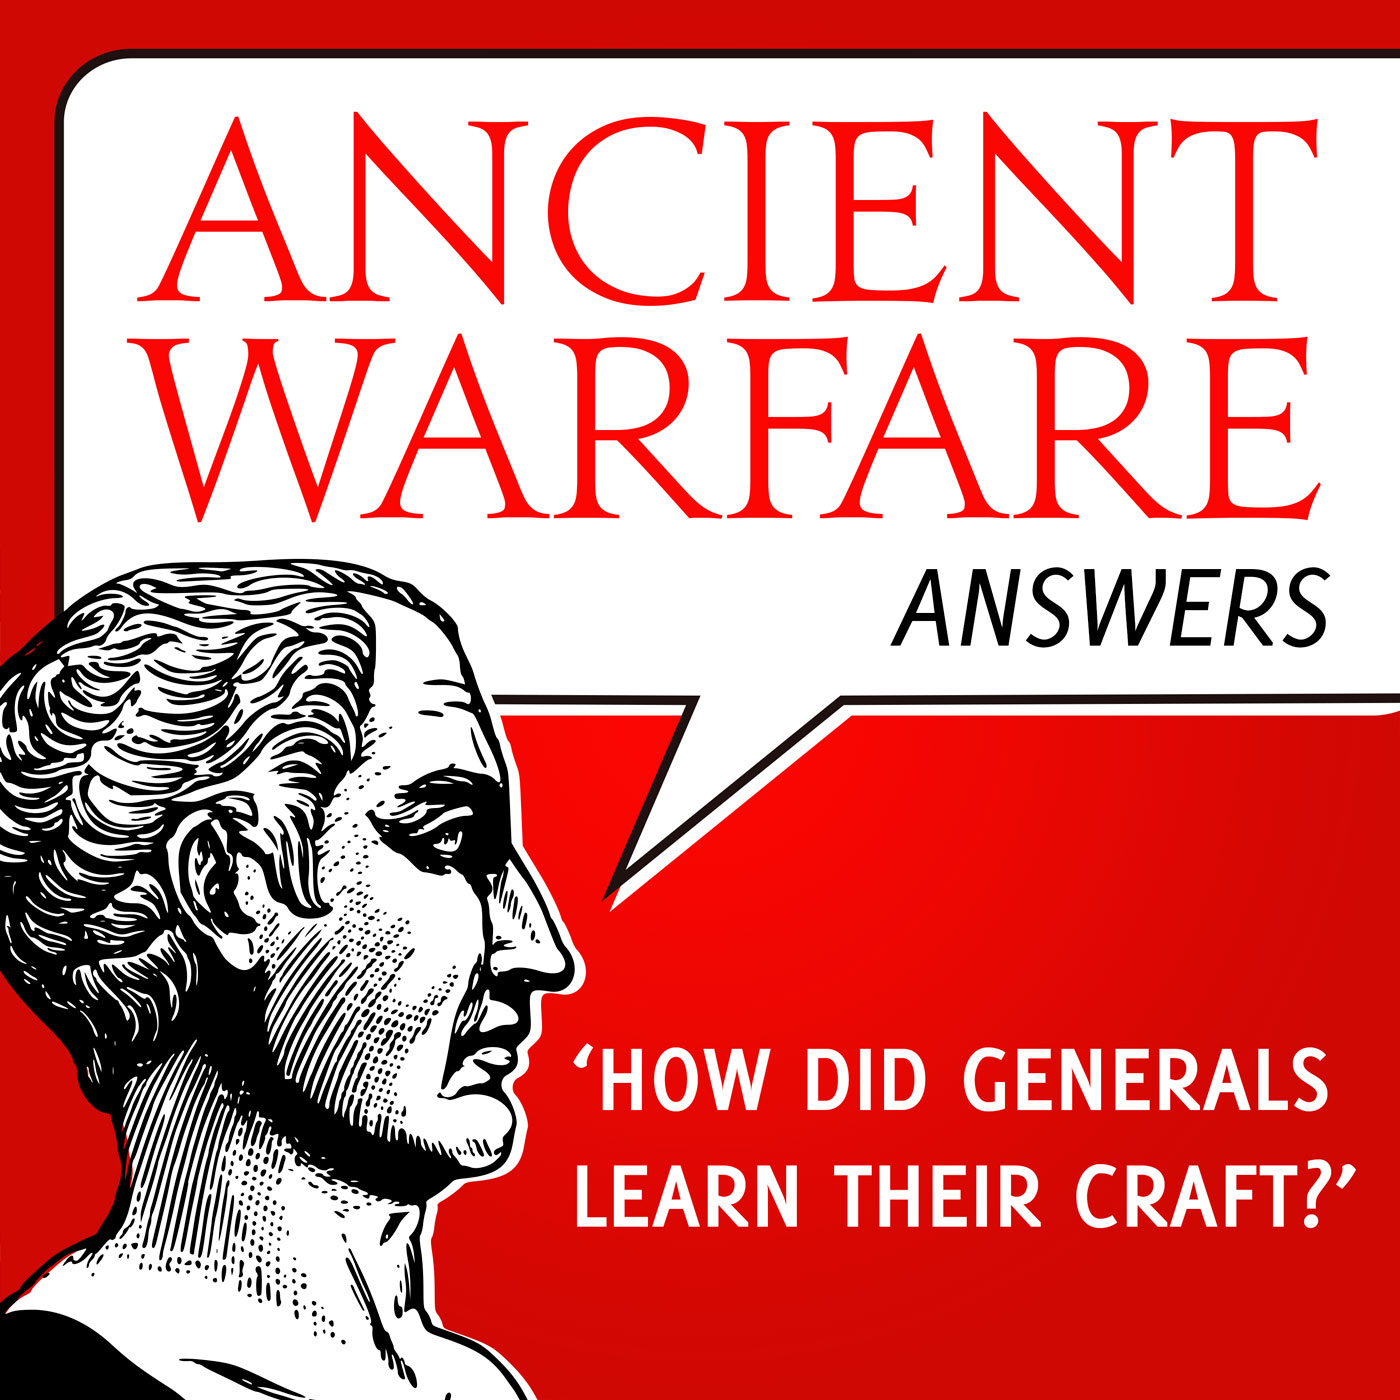 AWA - How did Generals learn their craft?